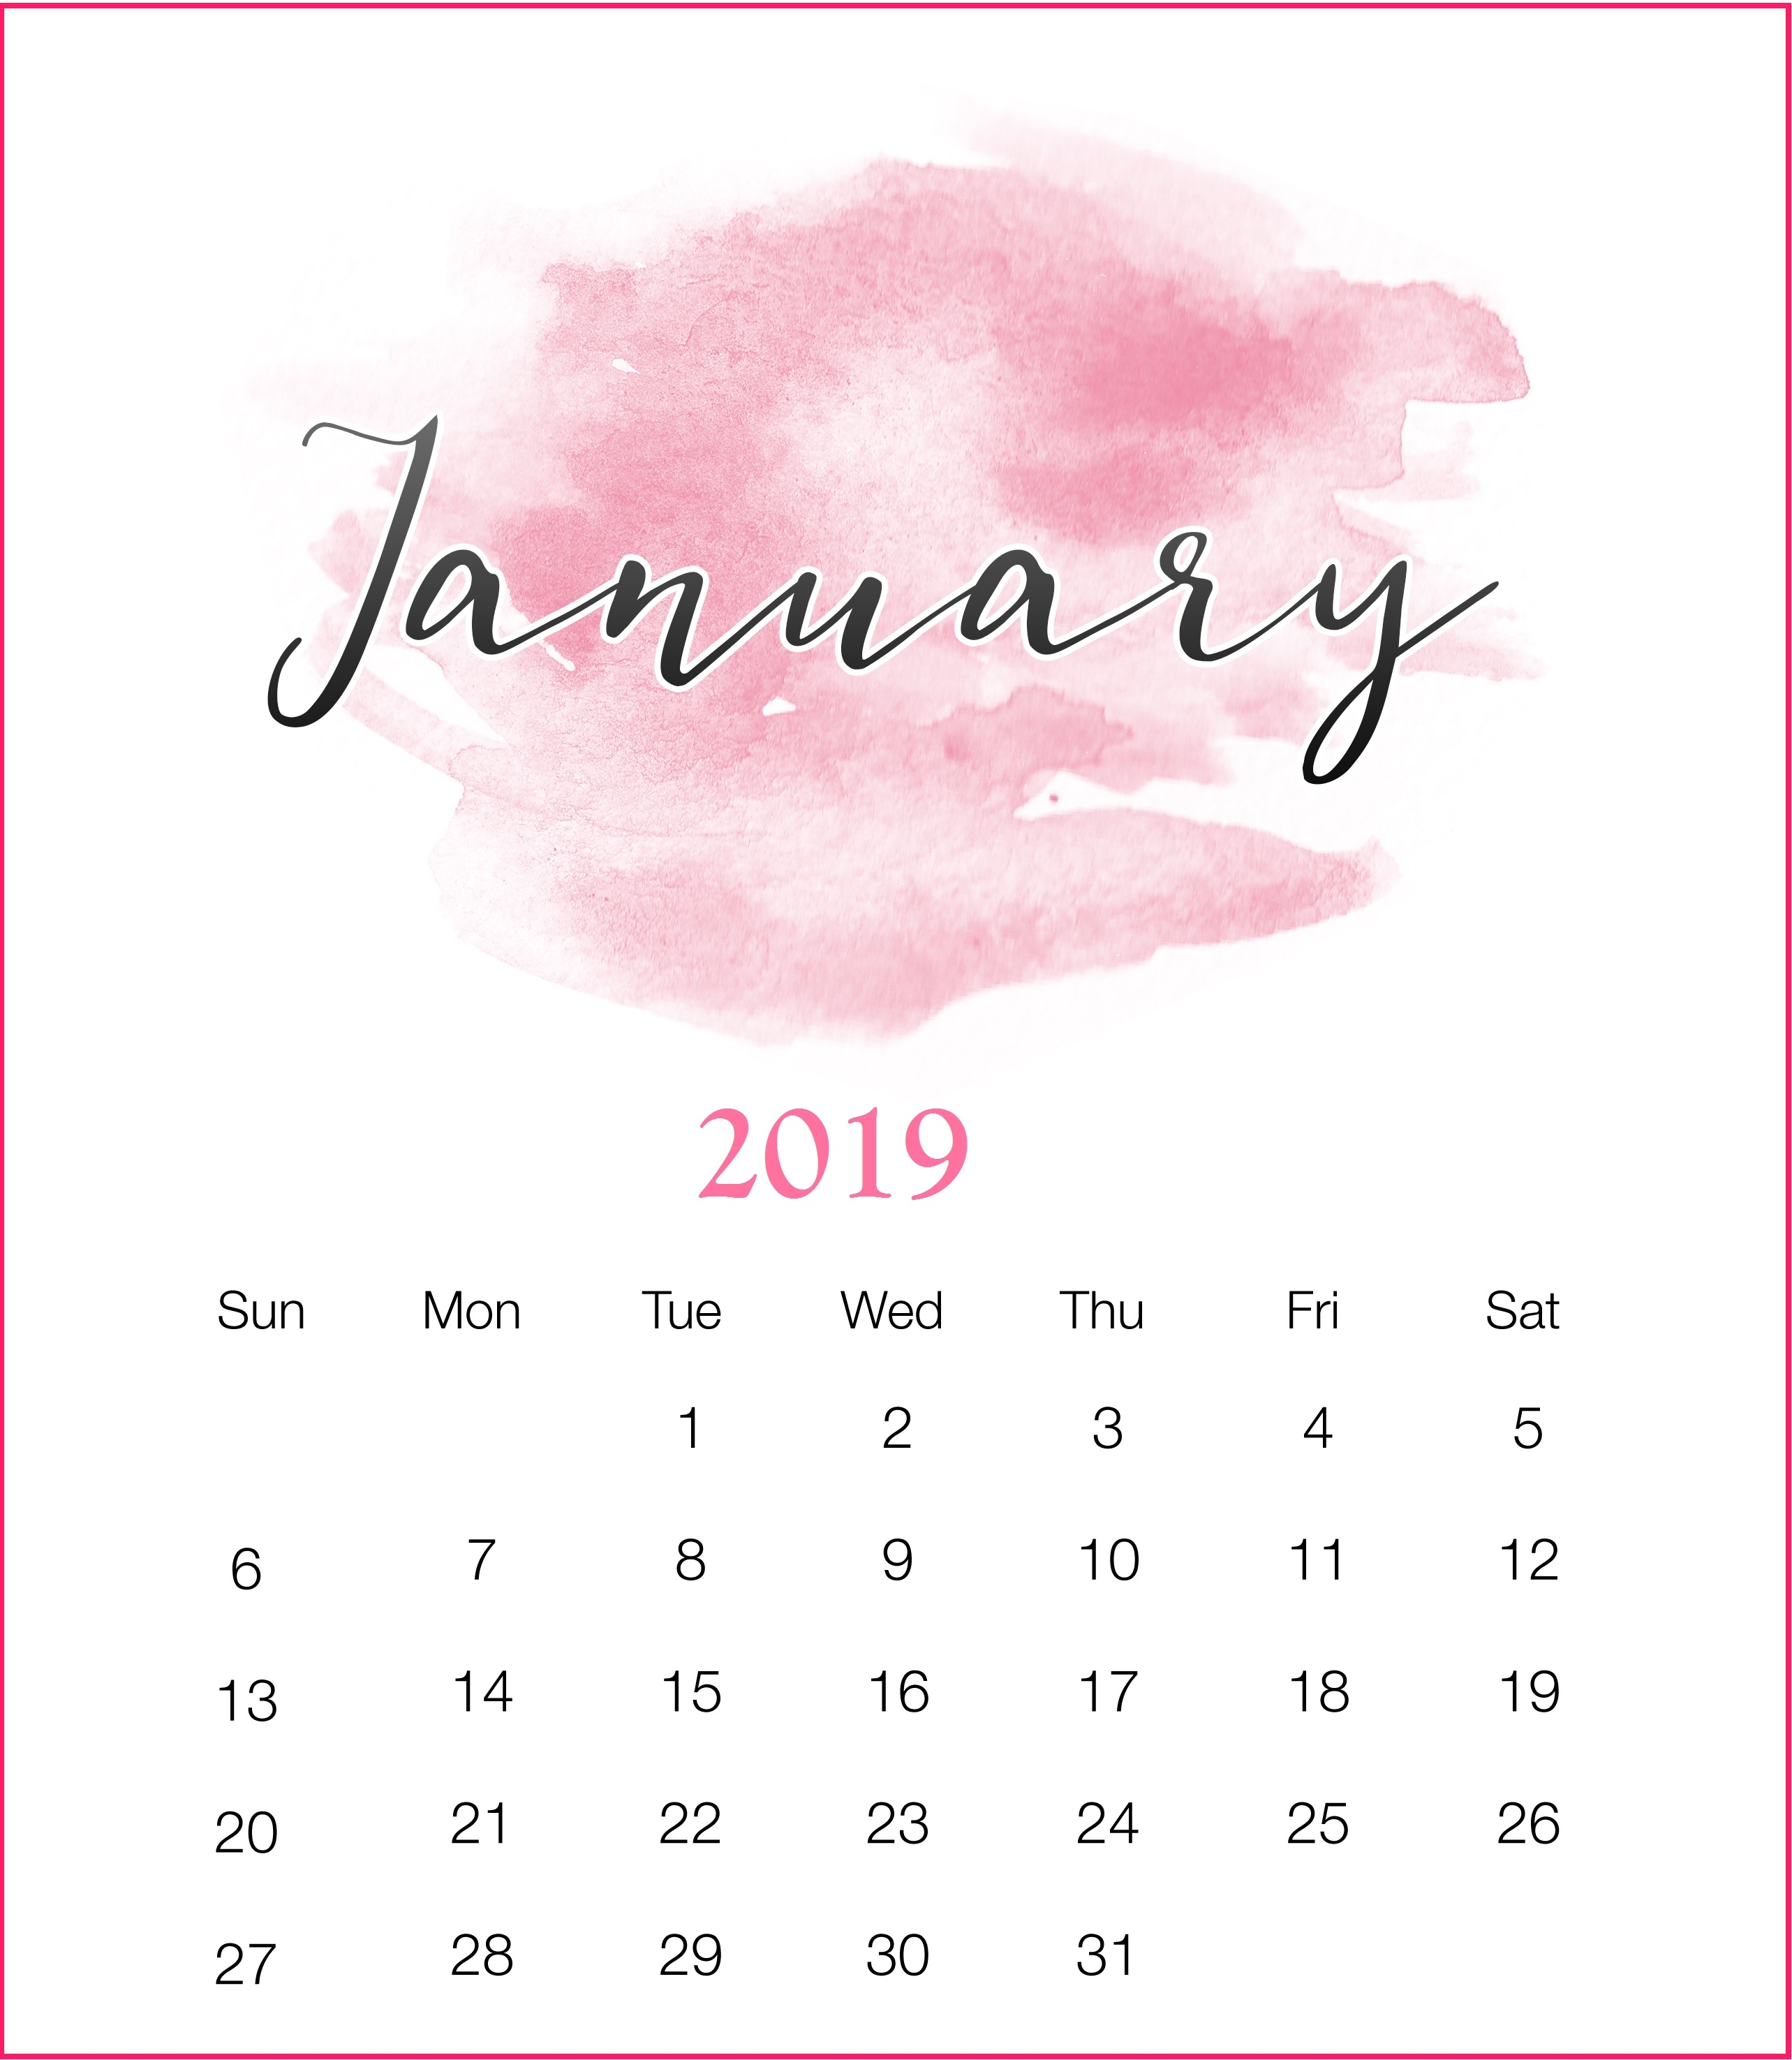 January 2019 Calendar Portrait & Landscape